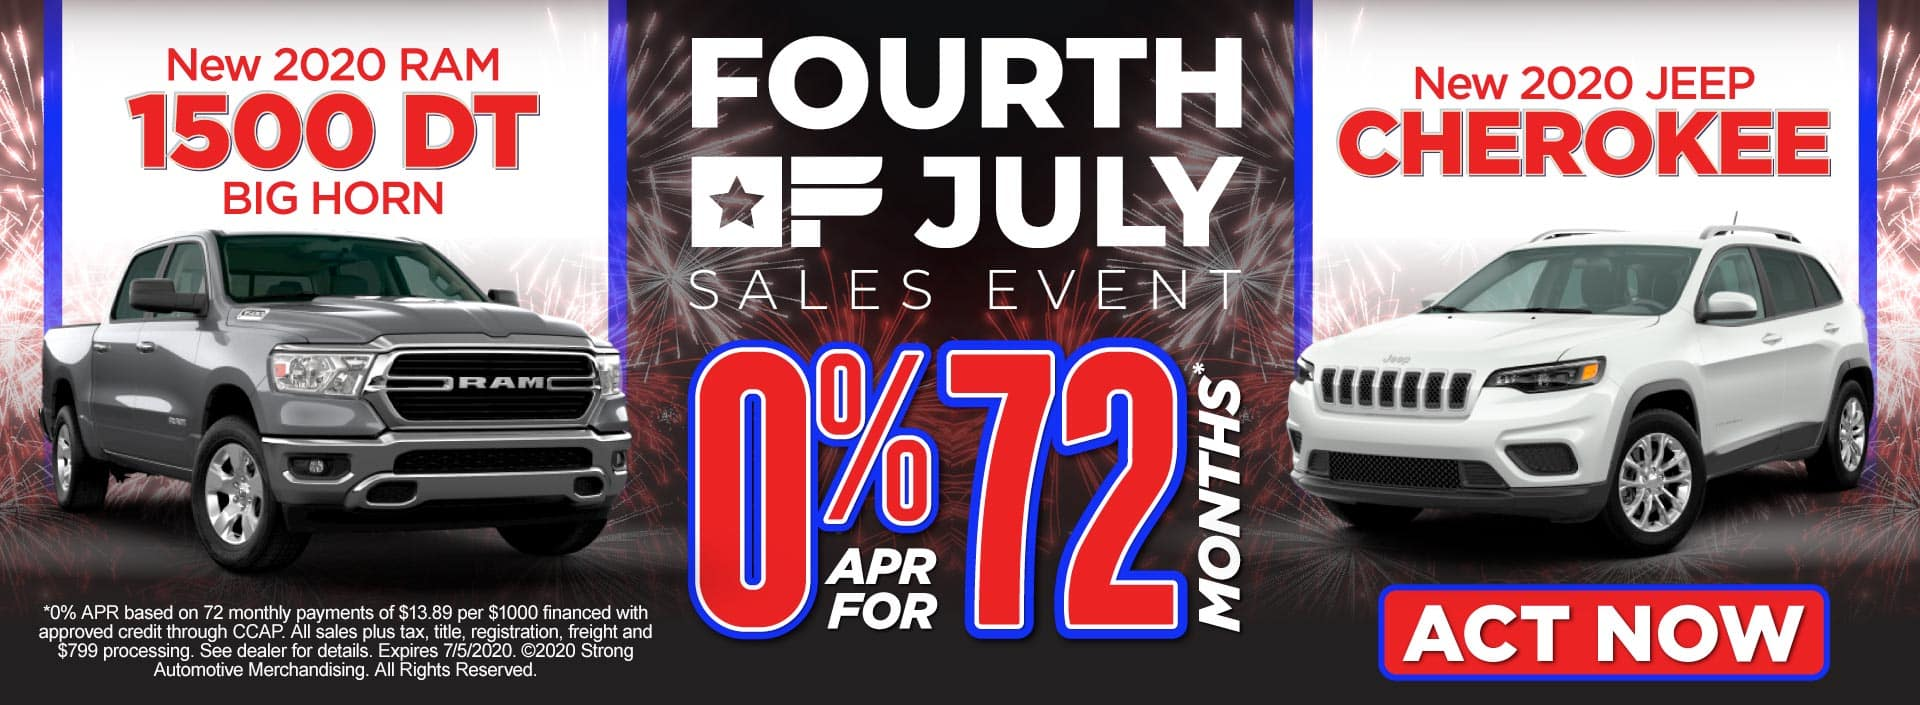 New 2020 Ram 1500 DT Big Horn and New 2020 Jeep Cherokee - 0% APR for 72 months - Click to View Inventory